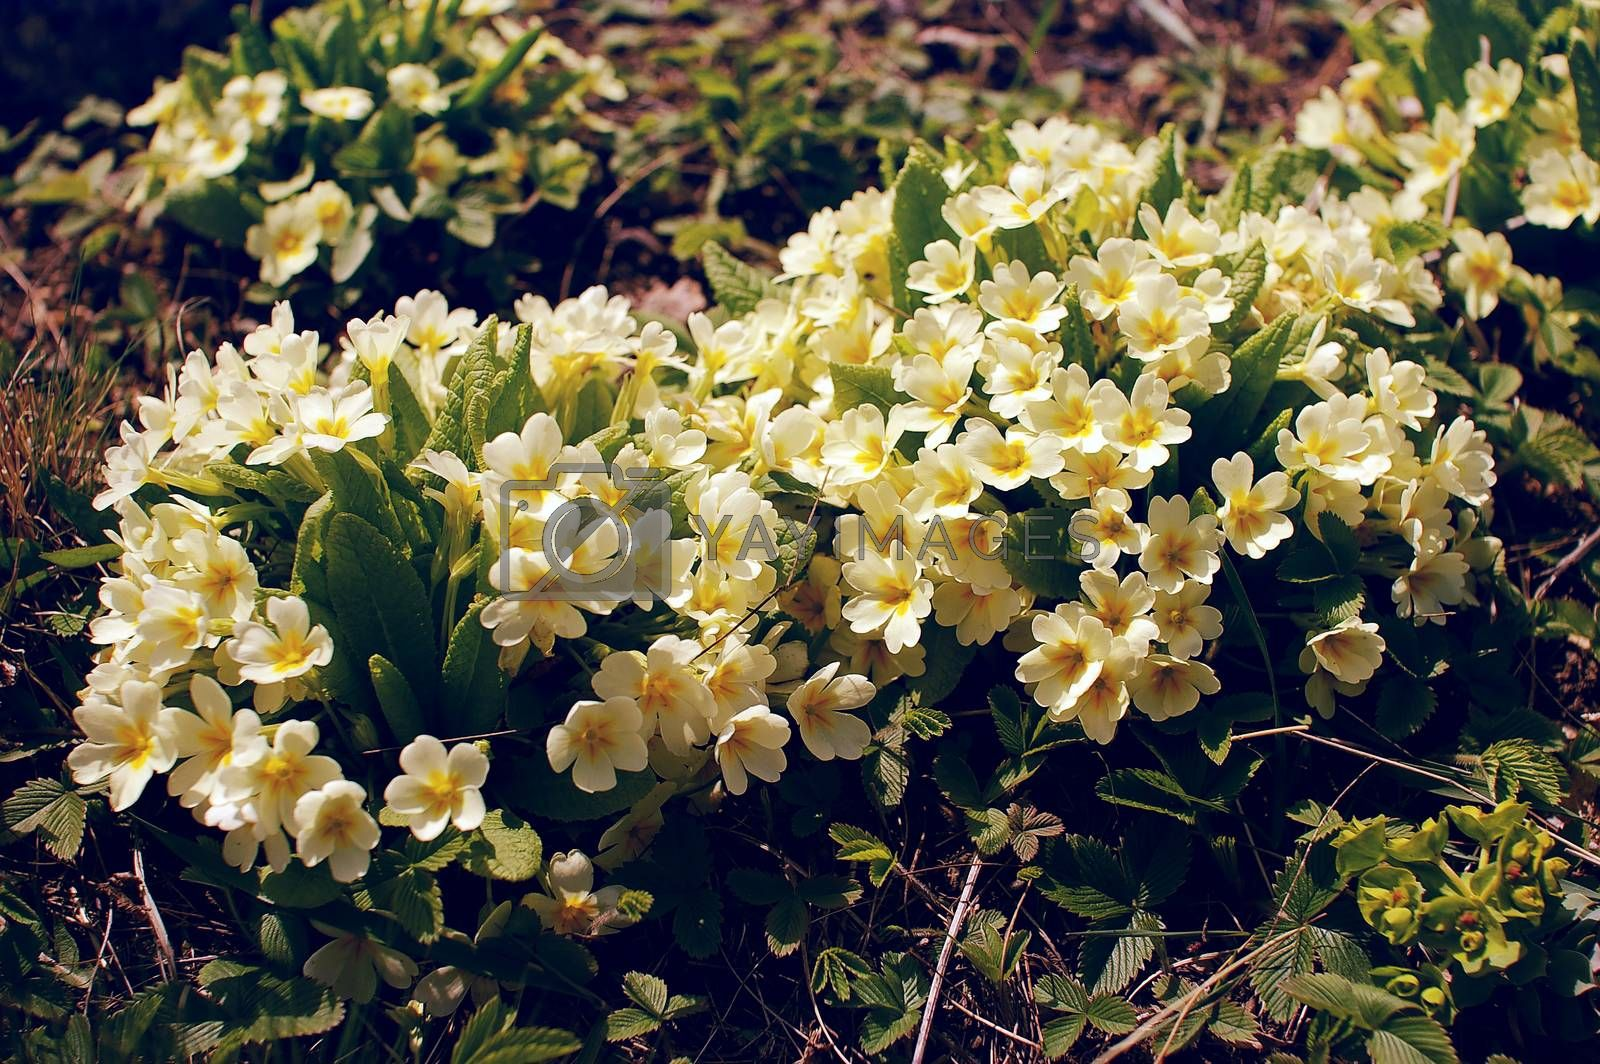 Beautiful group of yellow and white flowers in the woods